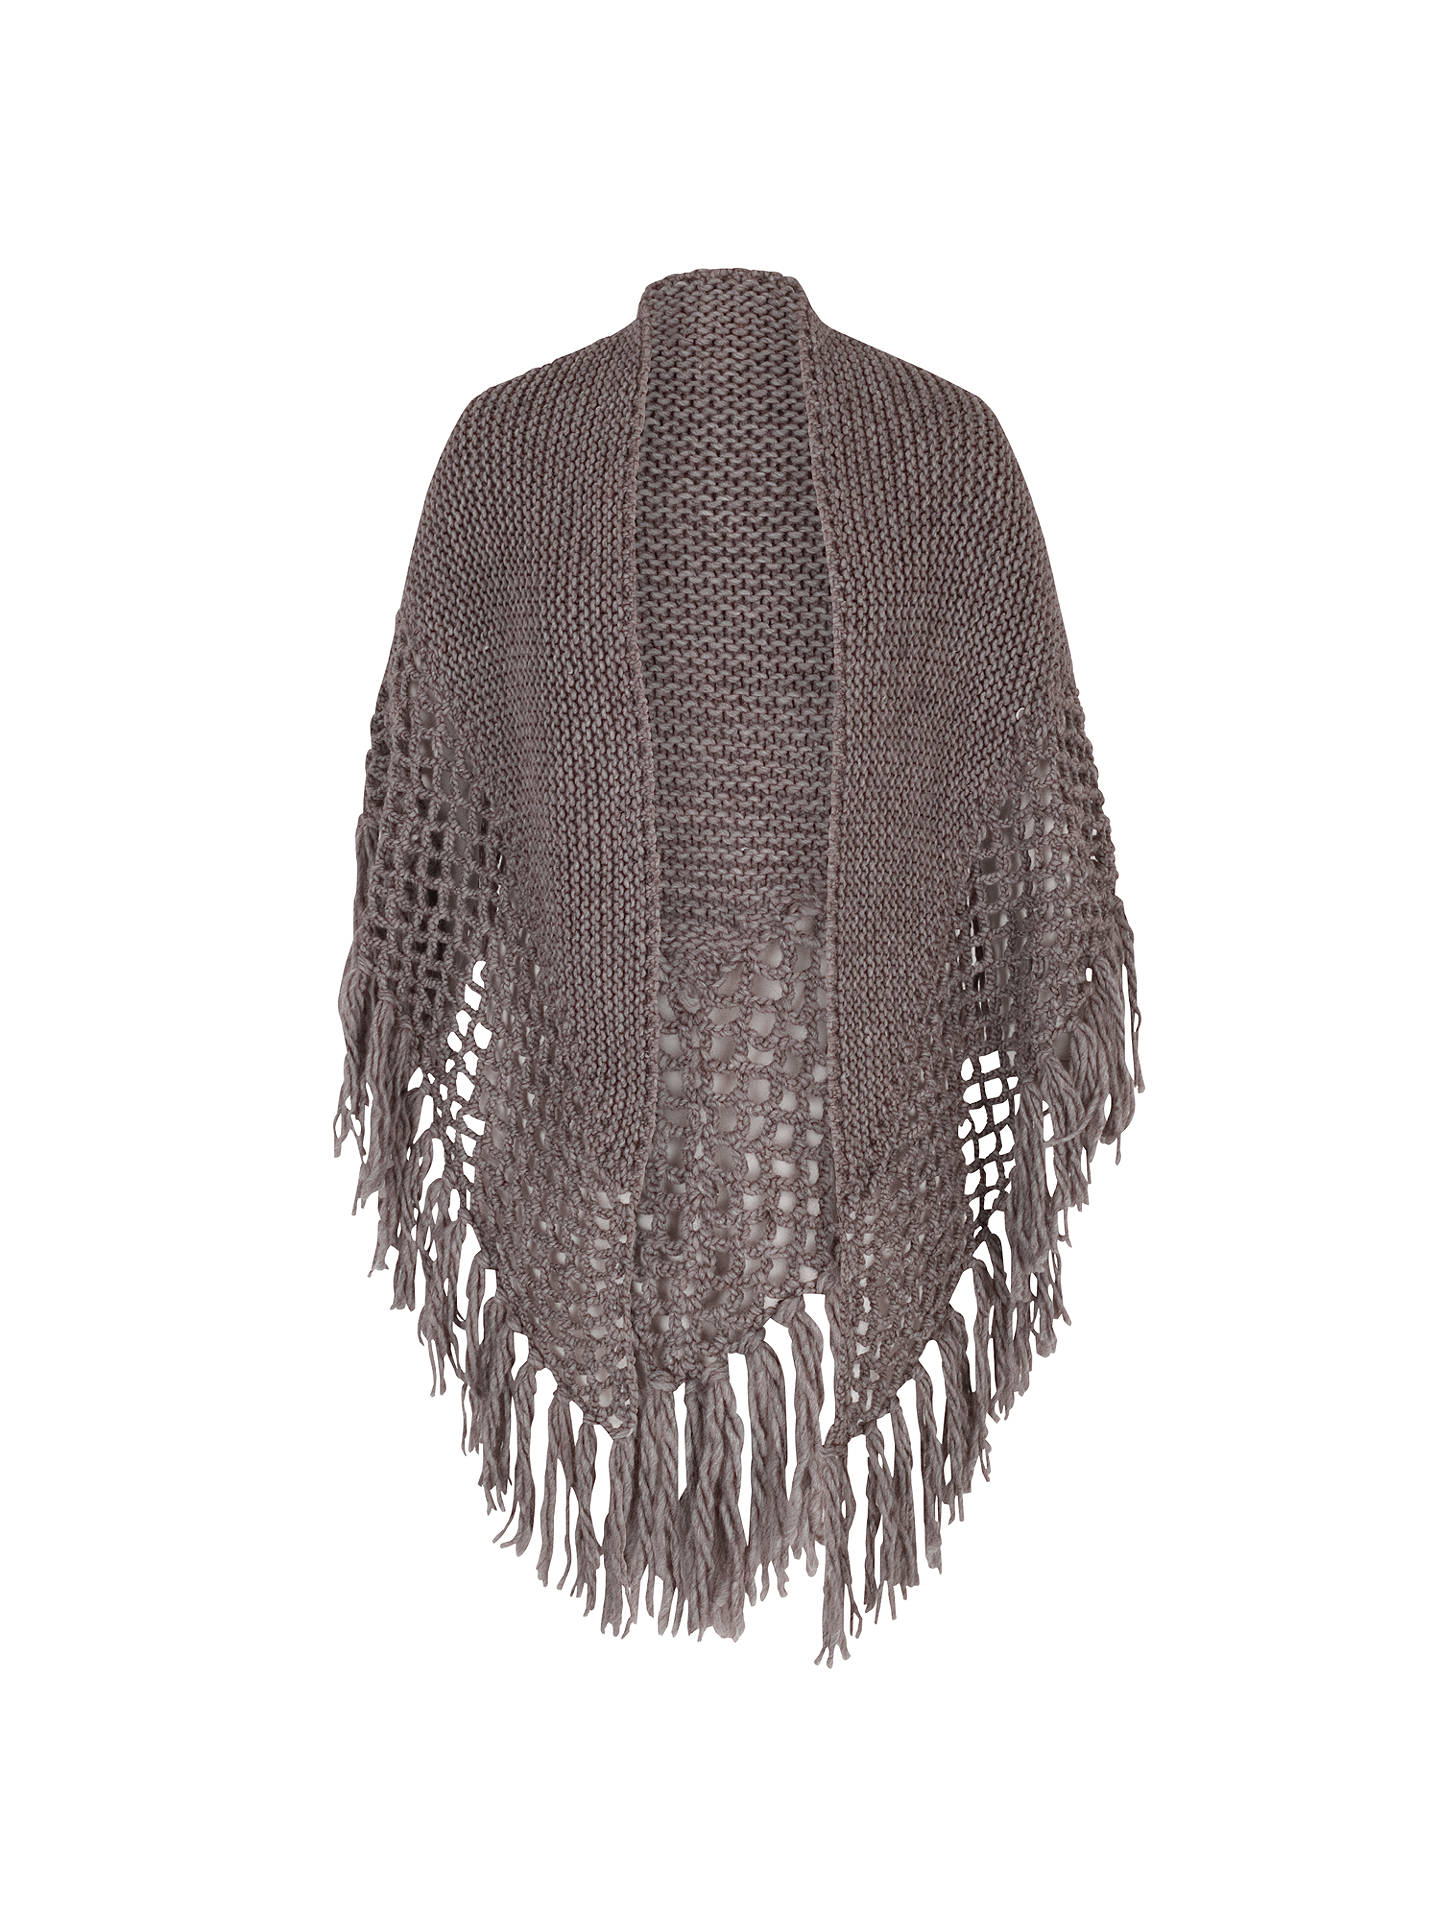 BuyChesca Wool Blend Large Fringed Shawl With Crocheted Panel, Taupe Online at johnlewis.com